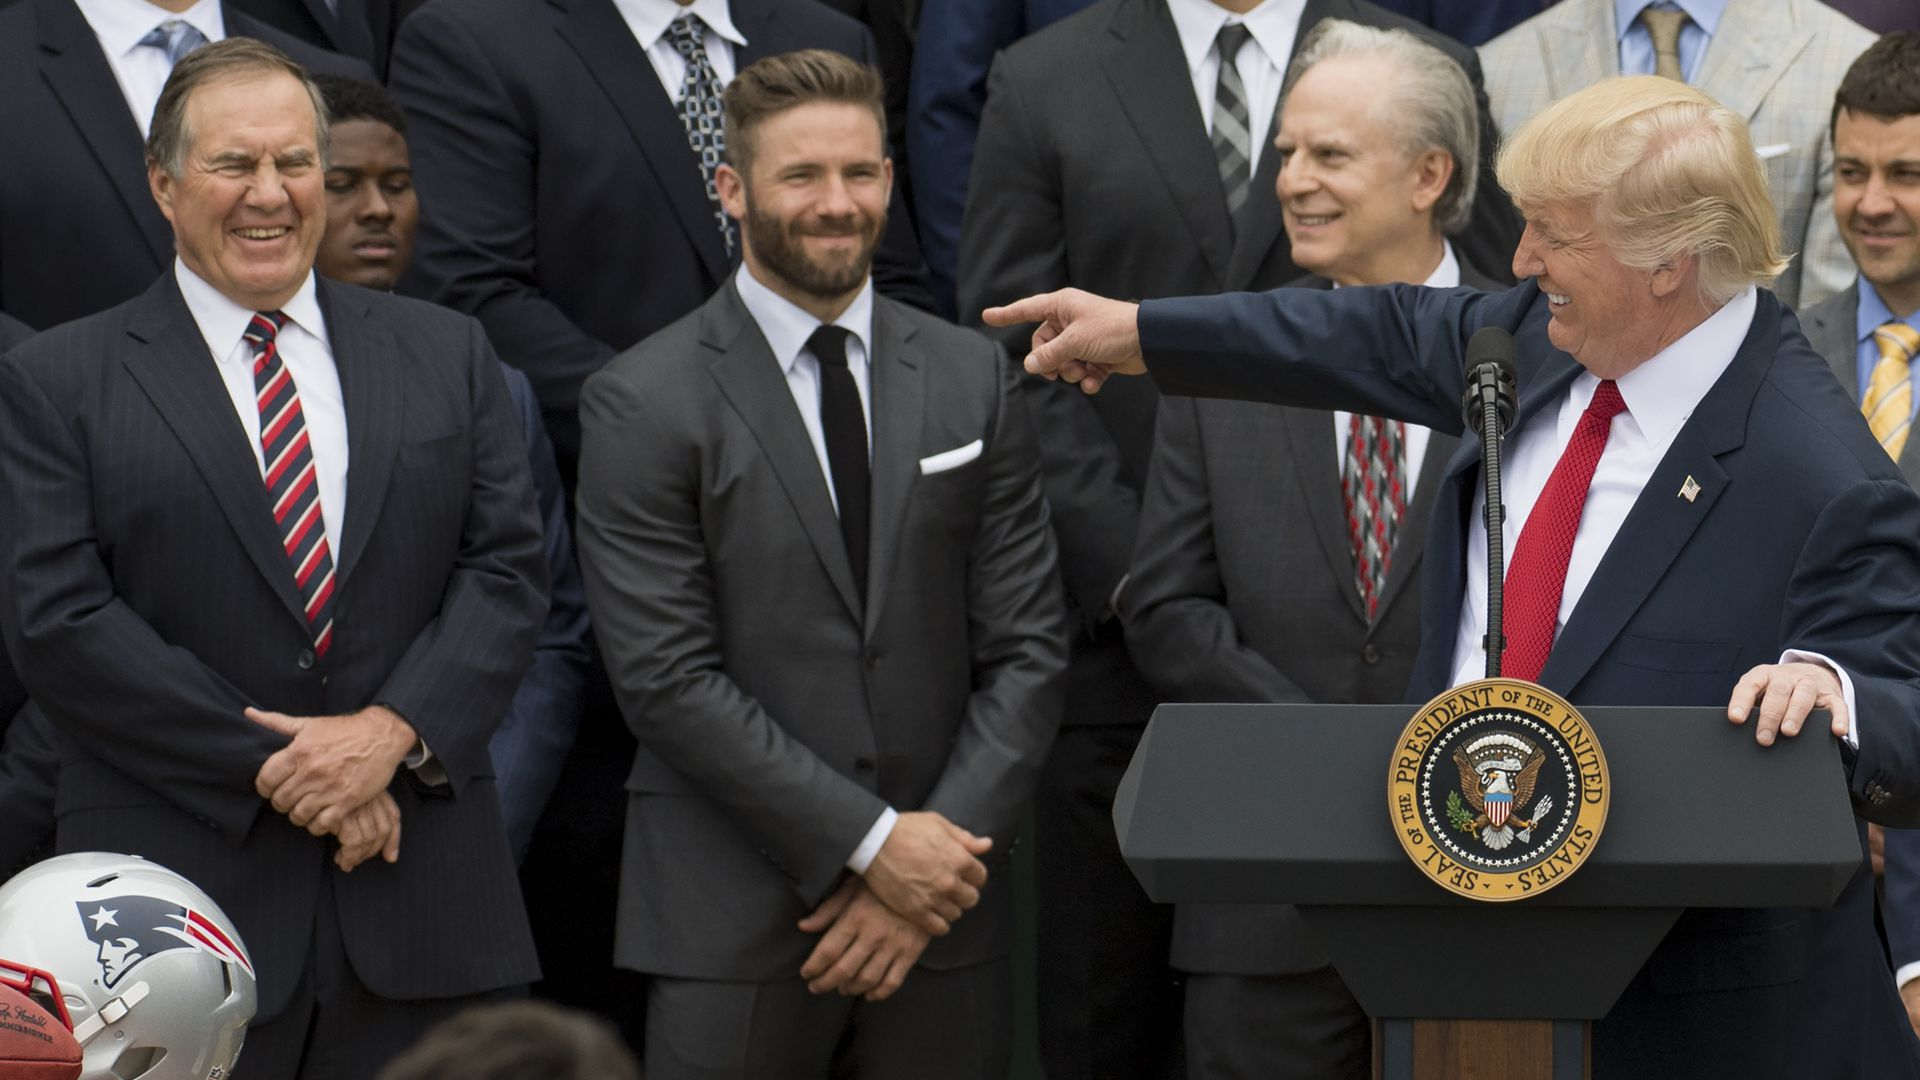 President Donald Trump at speaks alongside New England Patriots head coach Bill Belichick and team members during a White House ceremony the 2017 Super Bowl Champions.